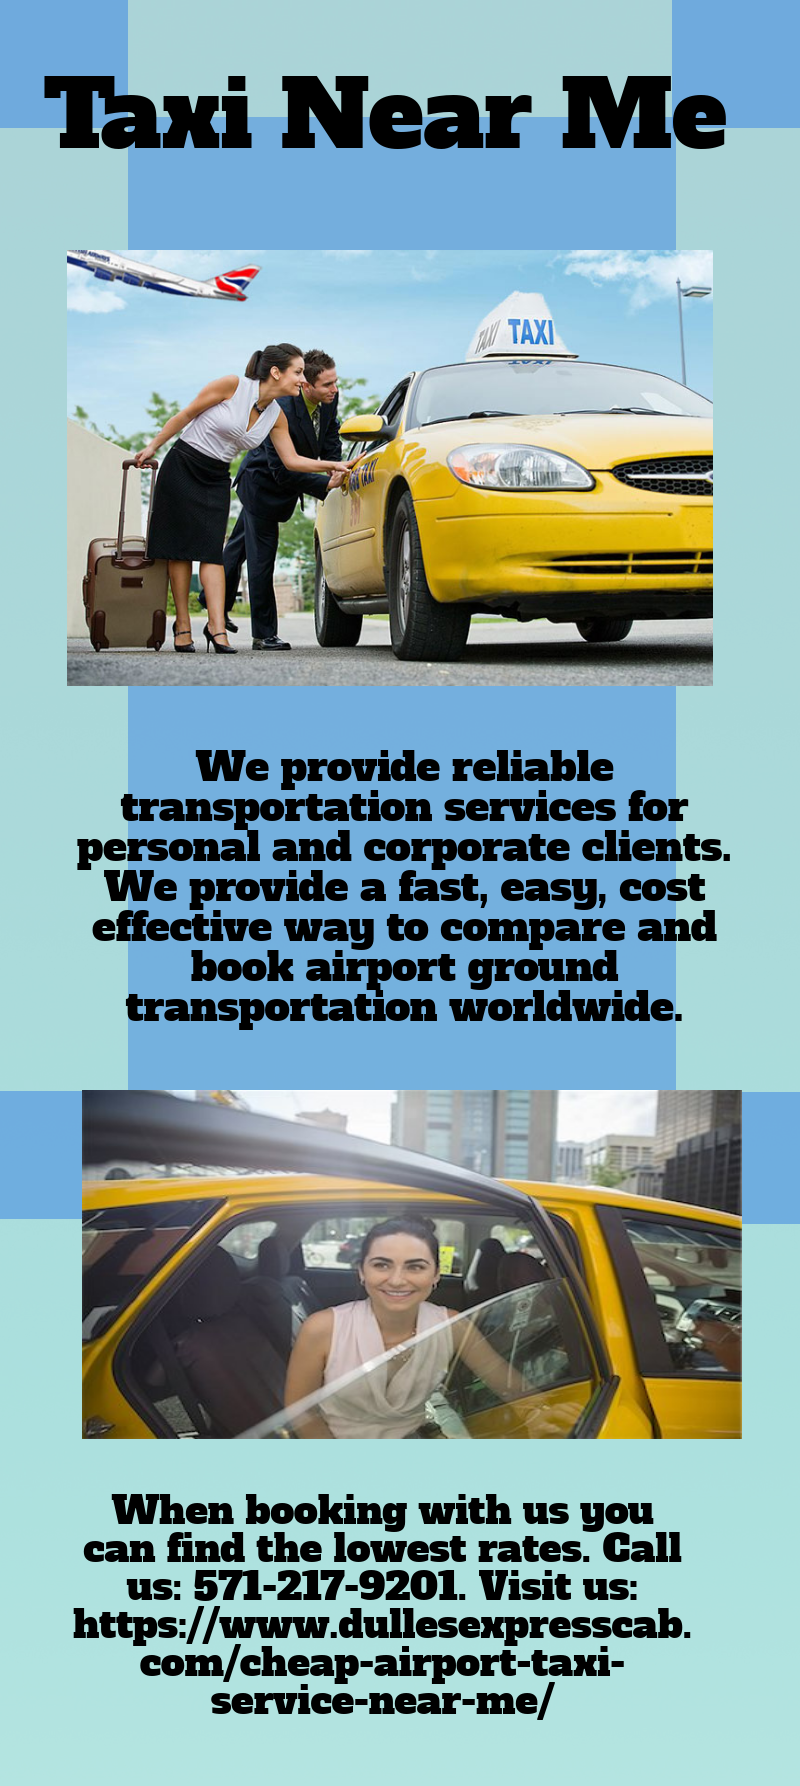 Our friendly drivers can pick you up anywhere and take you